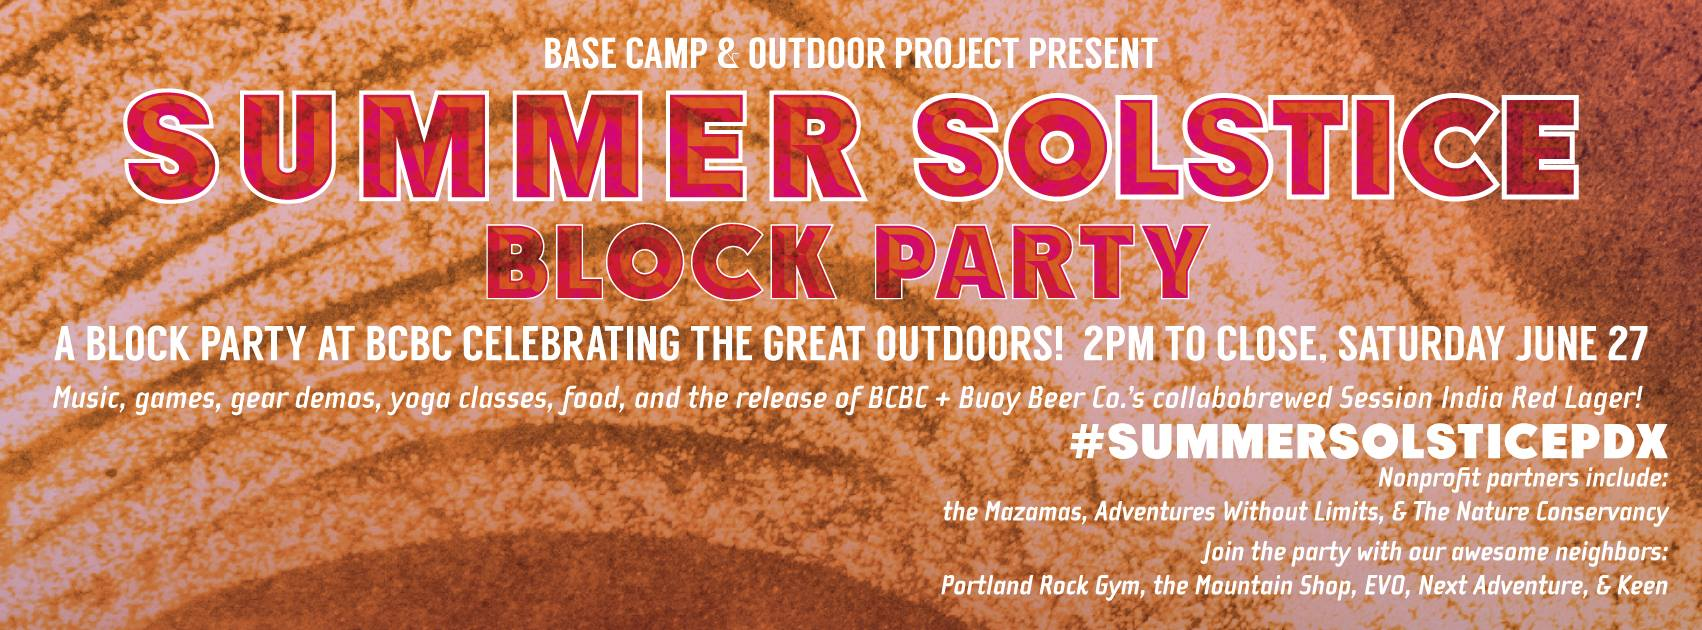 Base Camp Brewing Company Summer Solstice 2015